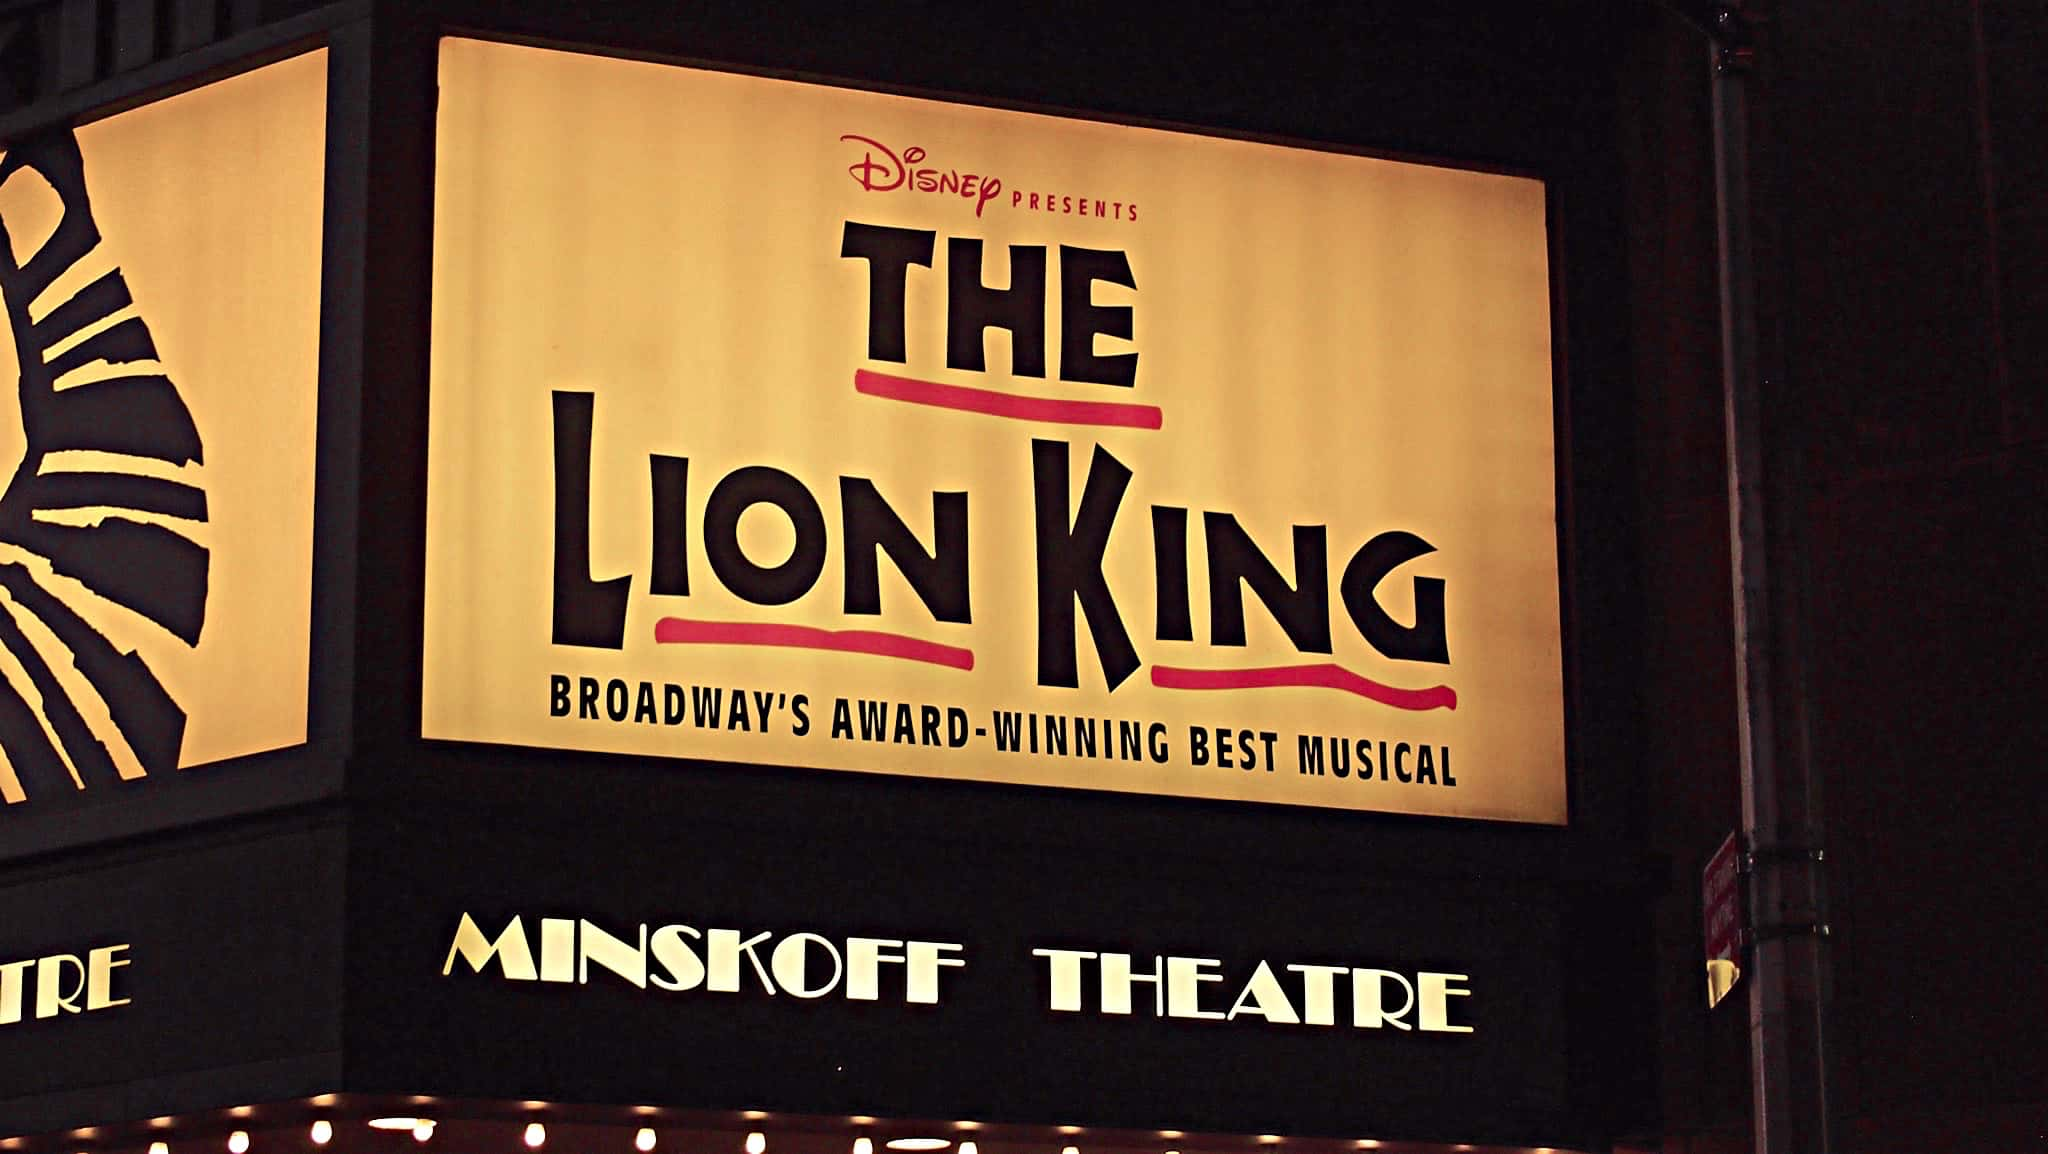 Carter McLean's drum set setup for the Broadway production of Lion King currently running at the Minskoff Theatre.